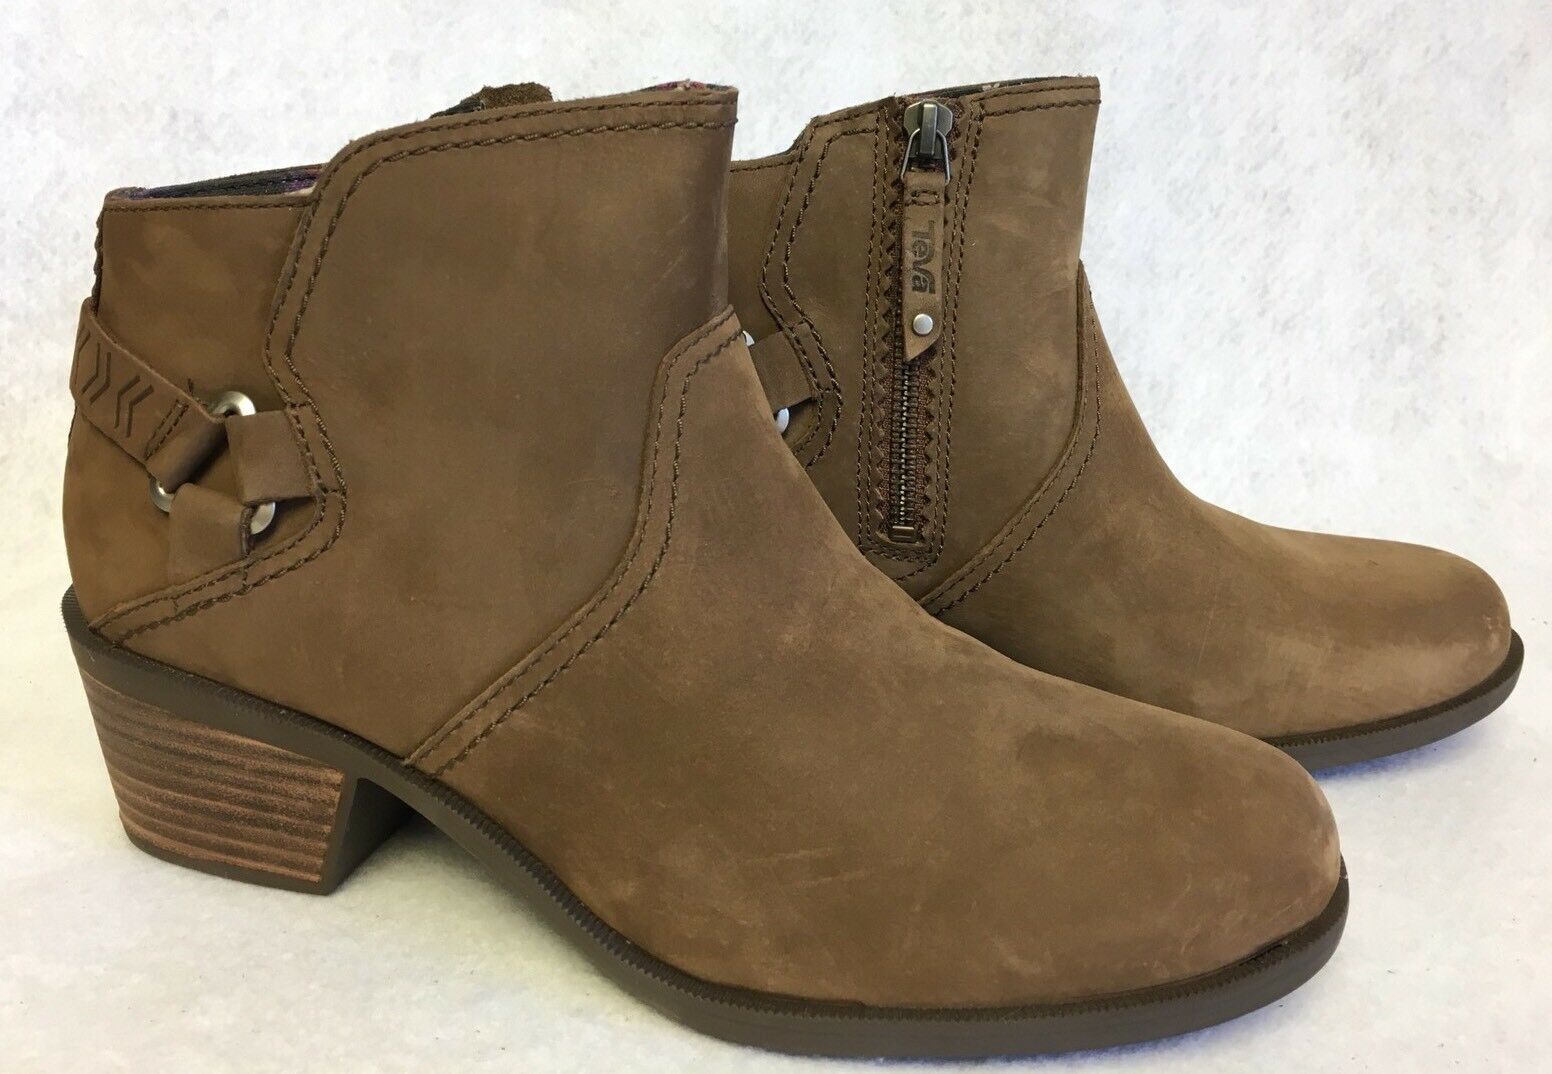 TEVA FOXY Bison braun LEATHER ANKLE damen STACKED HEEL Stiefel Stiefelies 1008317